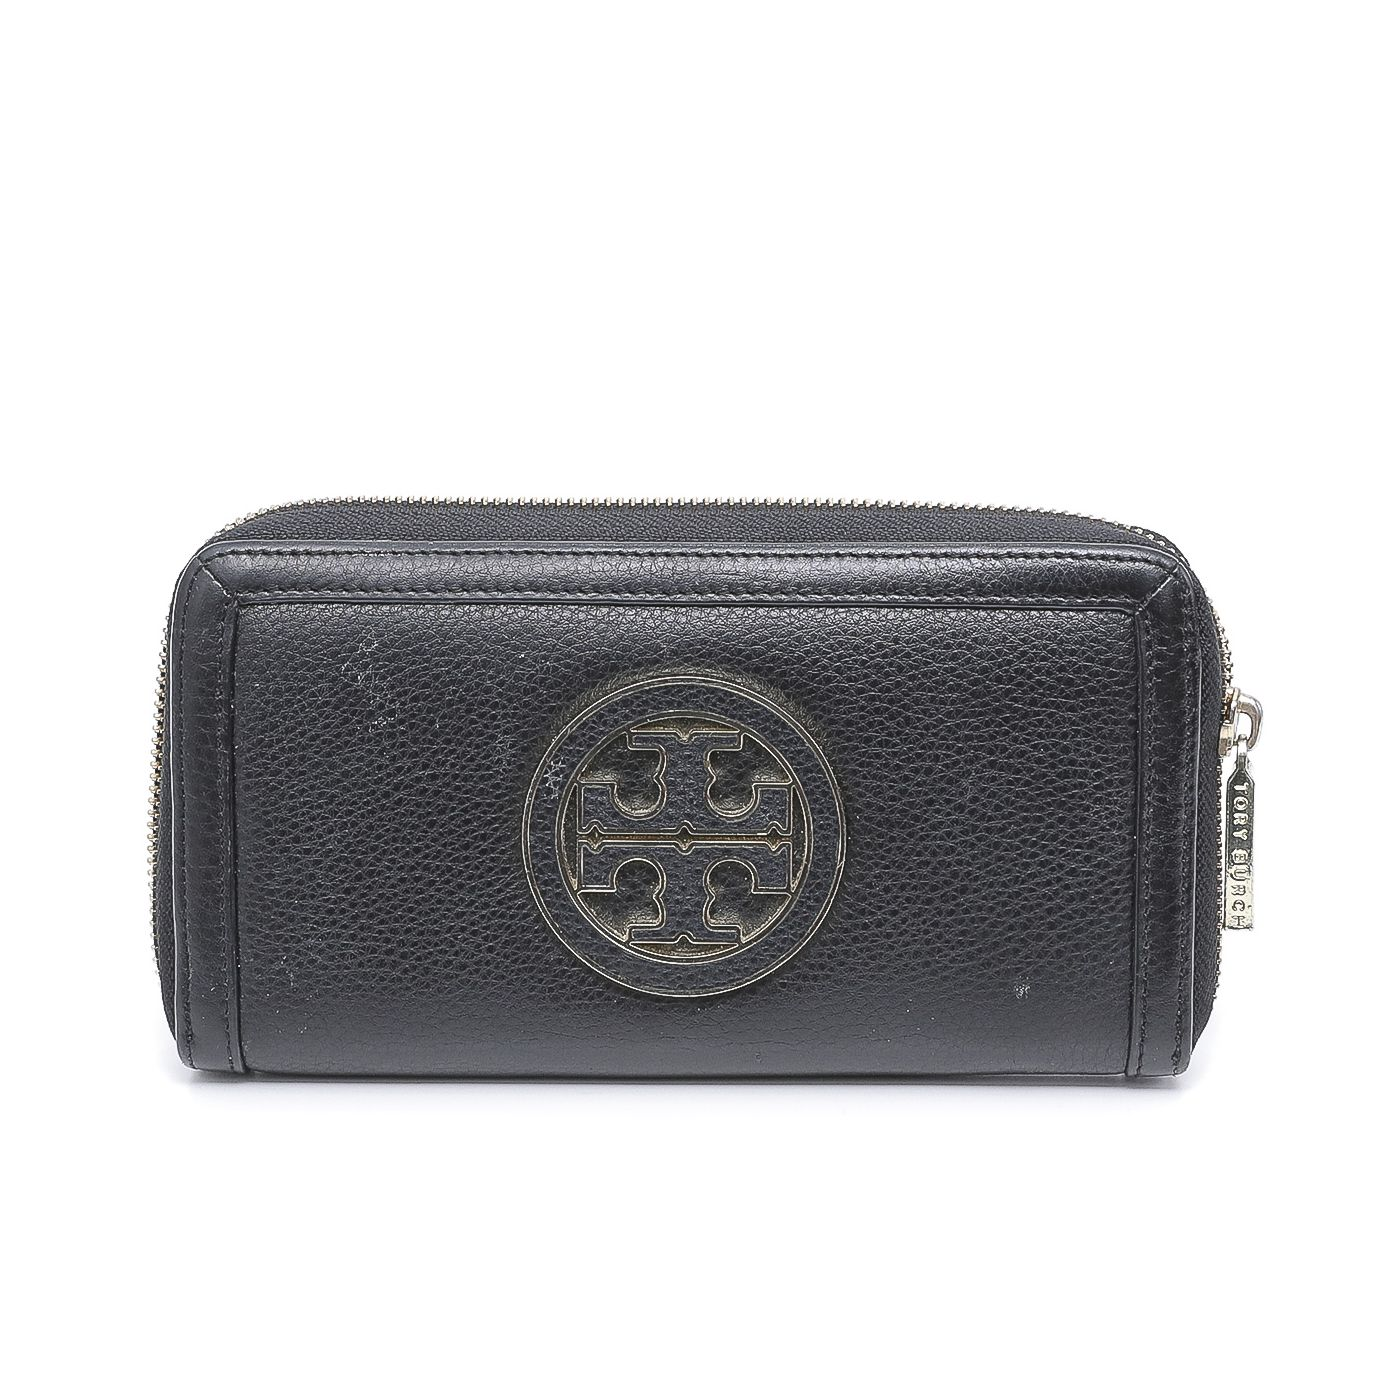 Tory Burch Black Holly Continental Zip Wallet